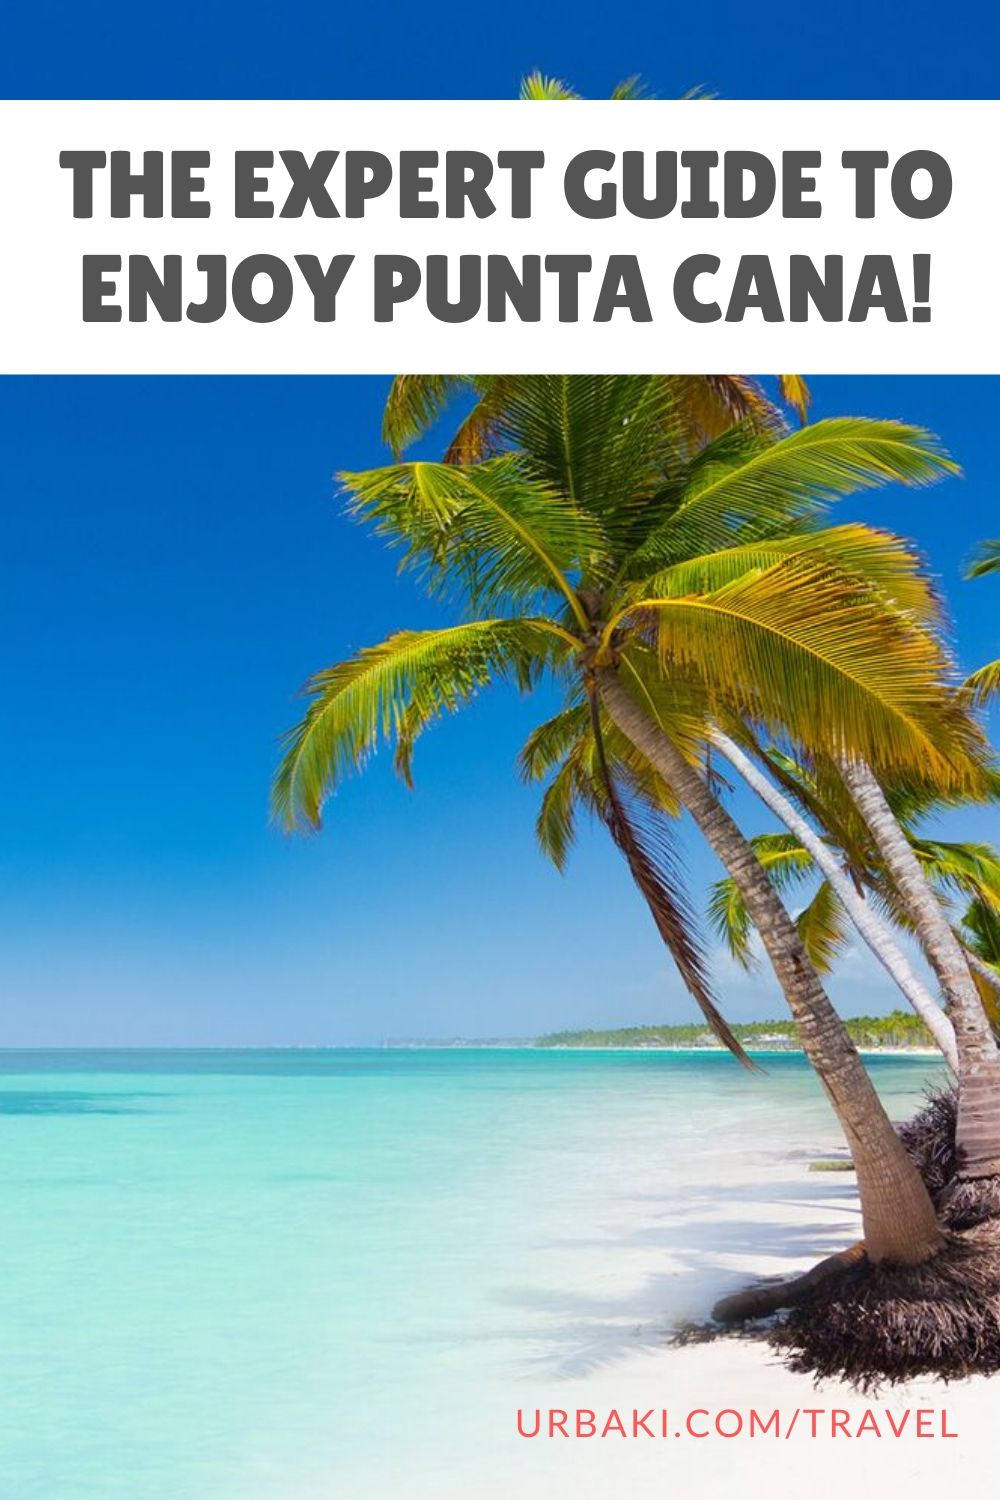 The Expert Guide to Enjoy Punta Cana, Dominican Republic